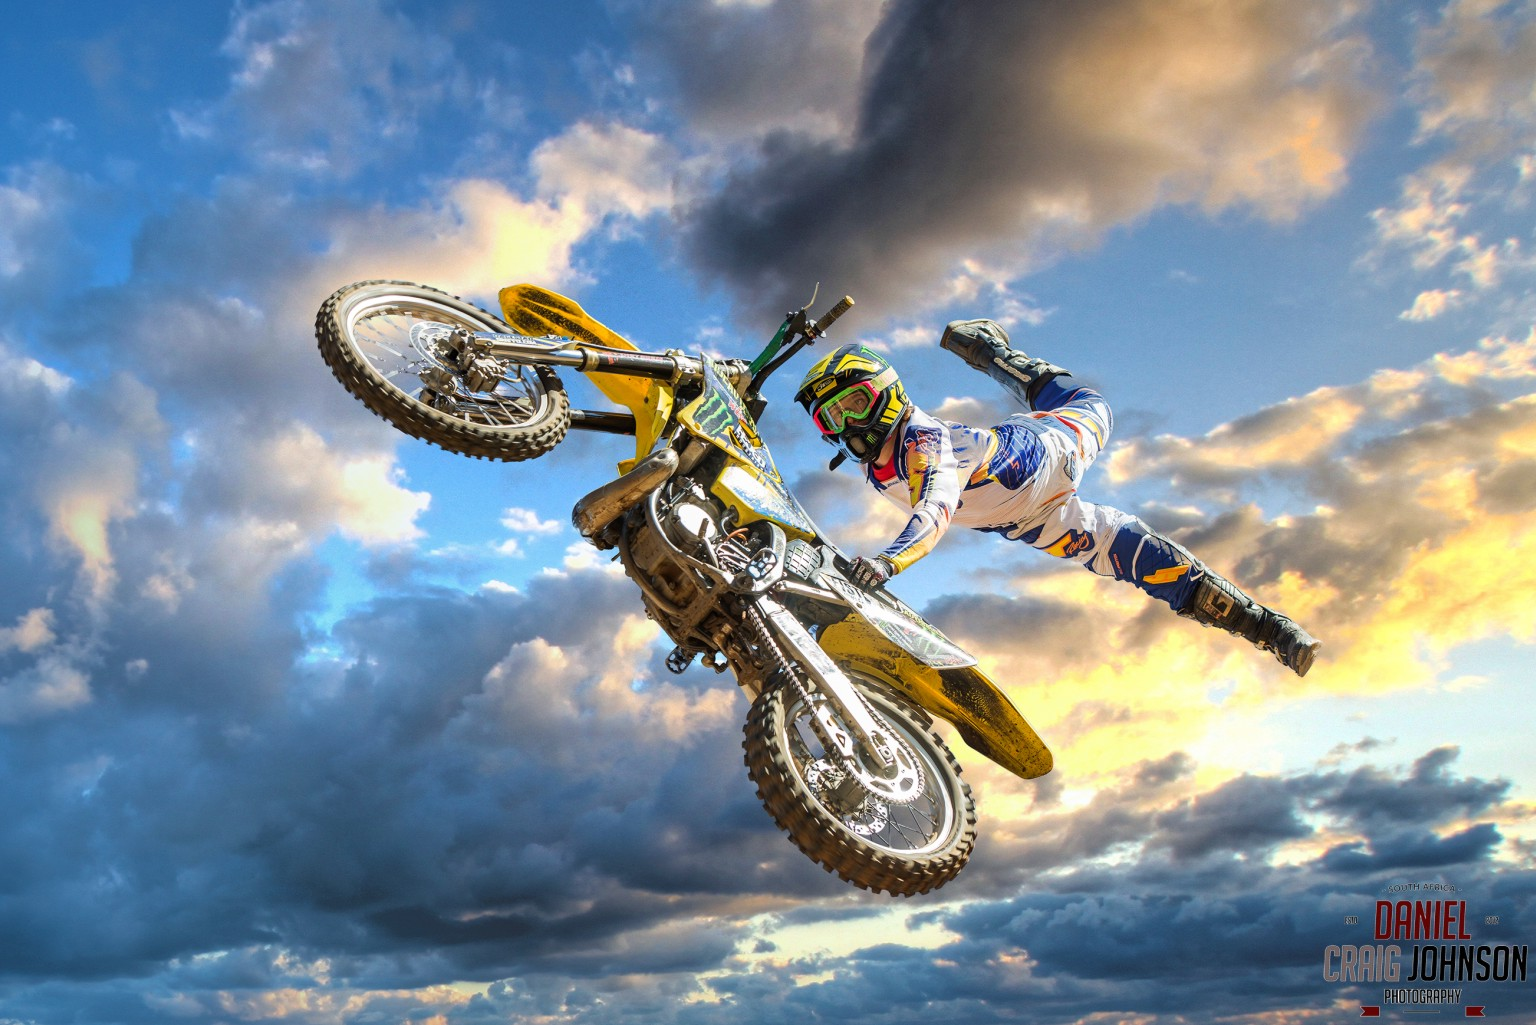 Freestyle Motocross at its best at round 2 of the SA FMX Development Series